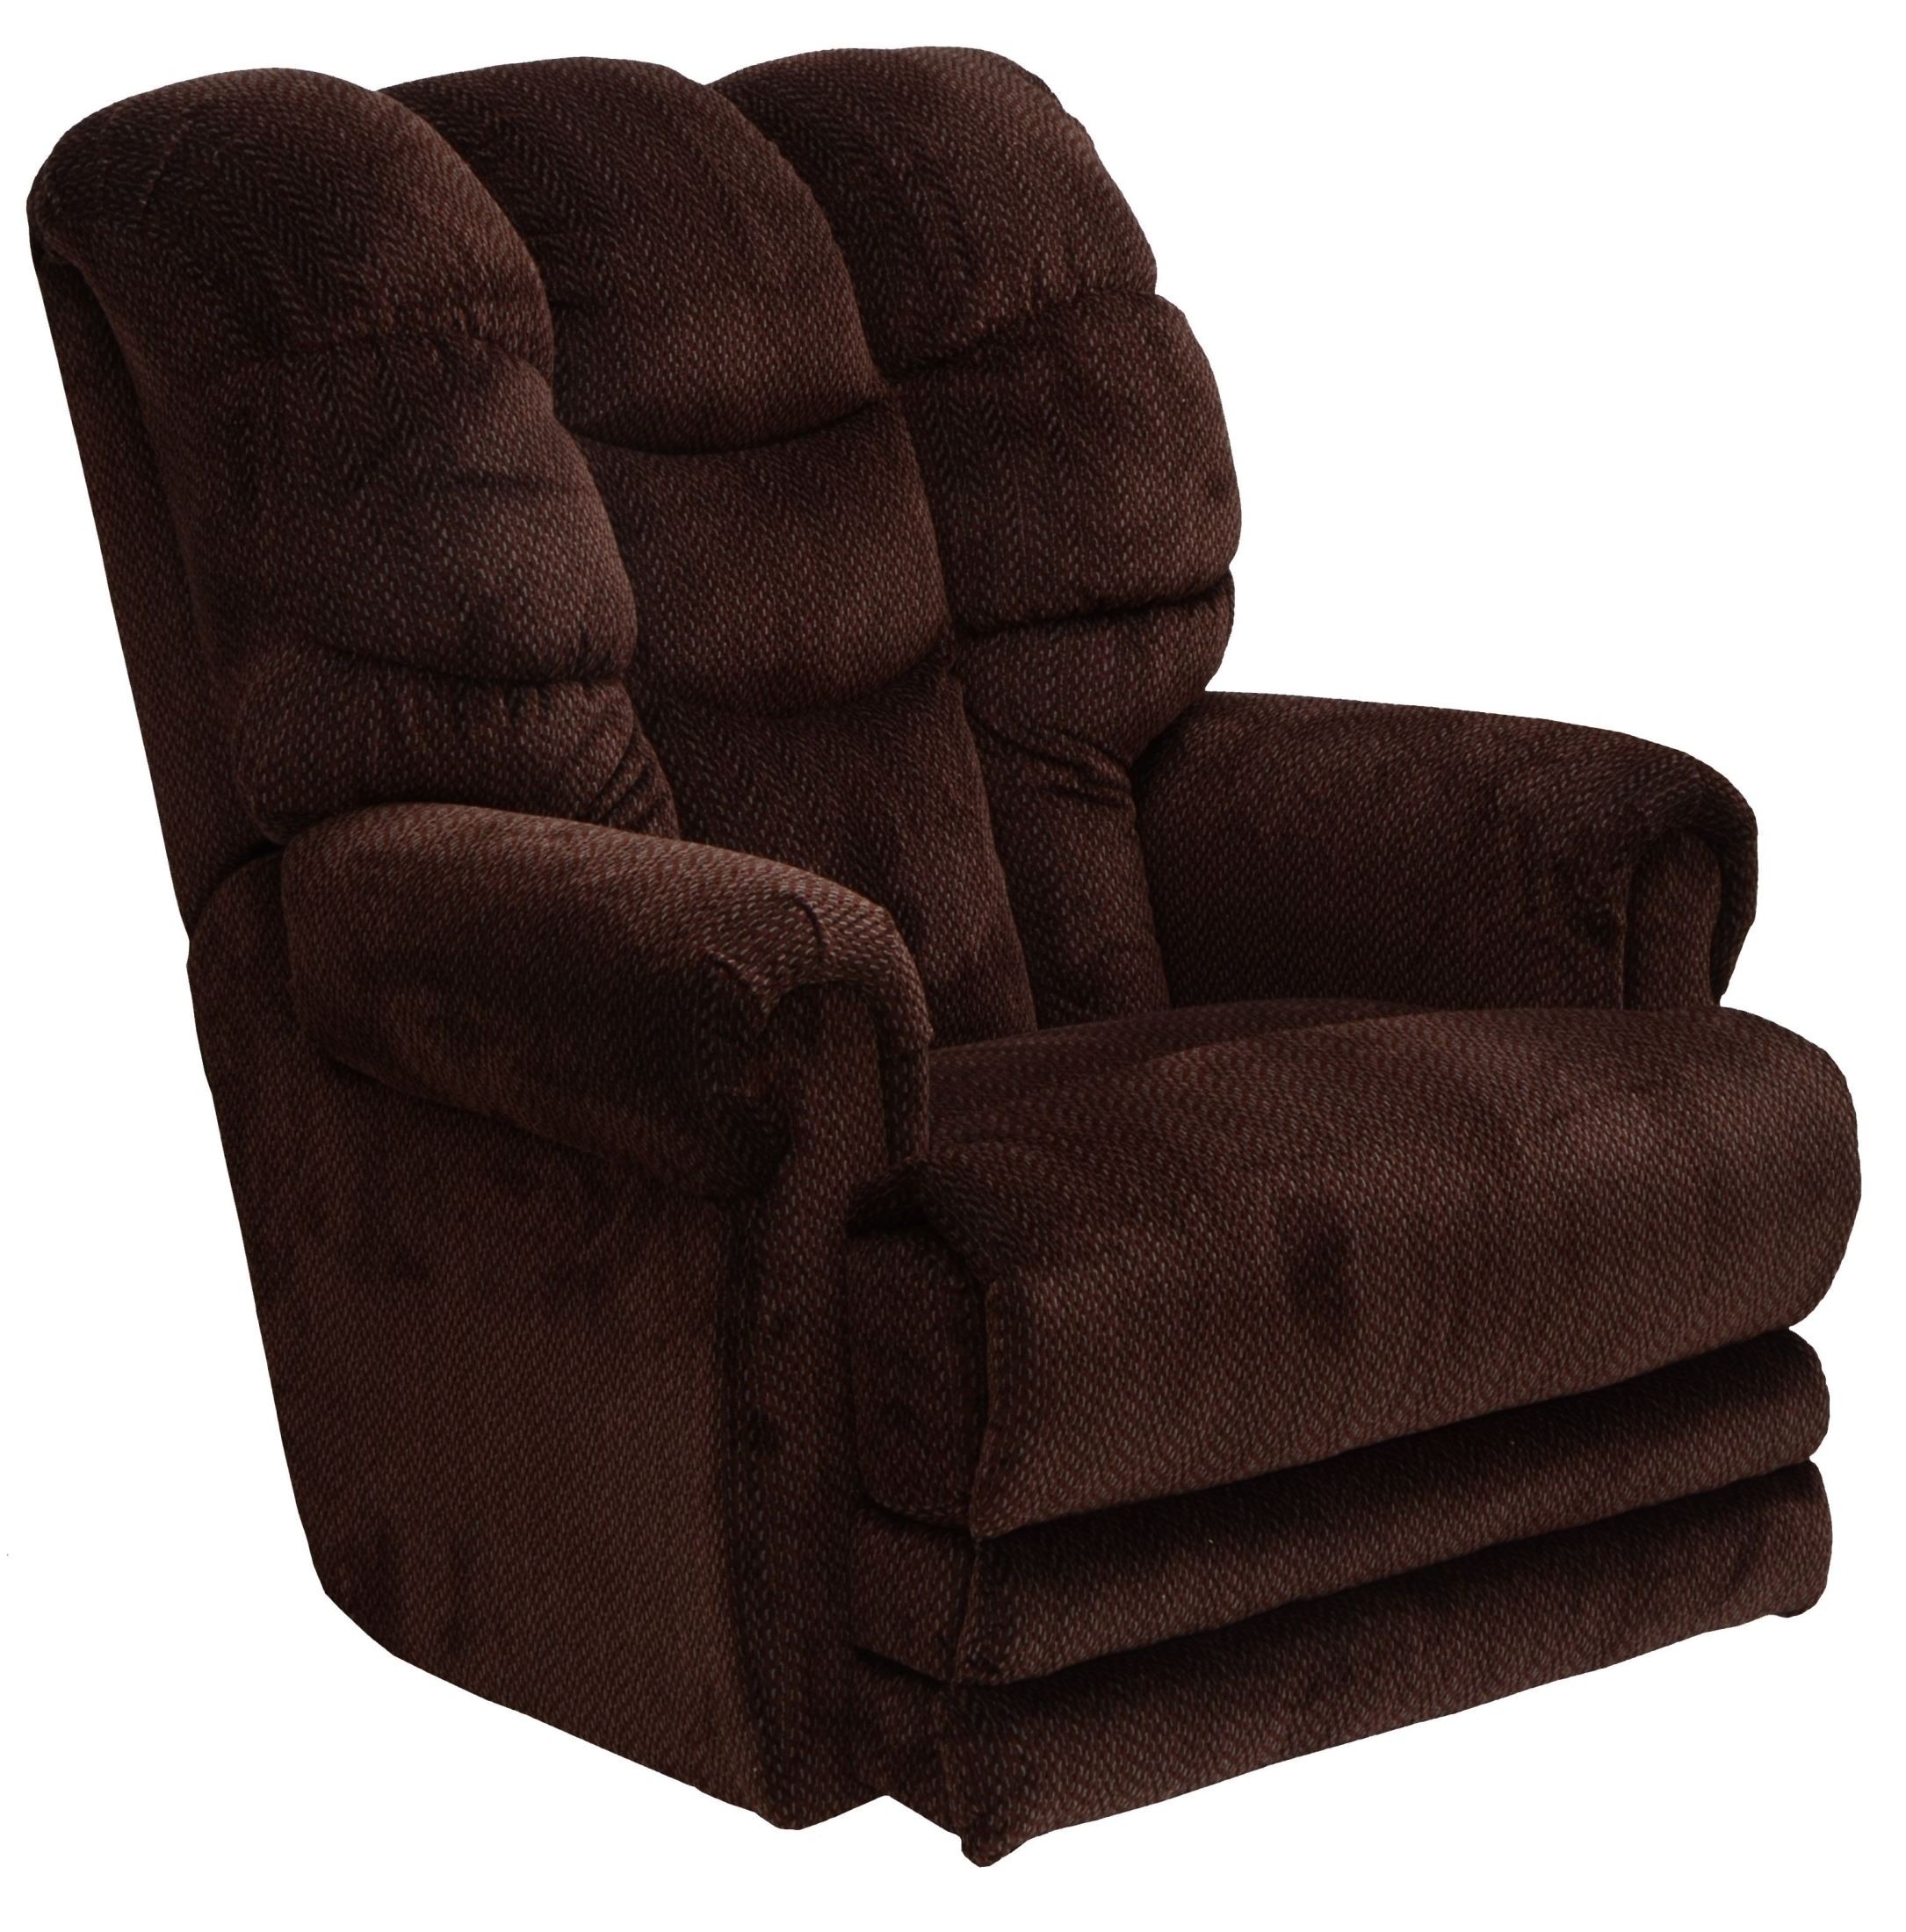 Malone Vino Lay Flat Power Recliner From Catnapper 642577000000 Coleman Furniture